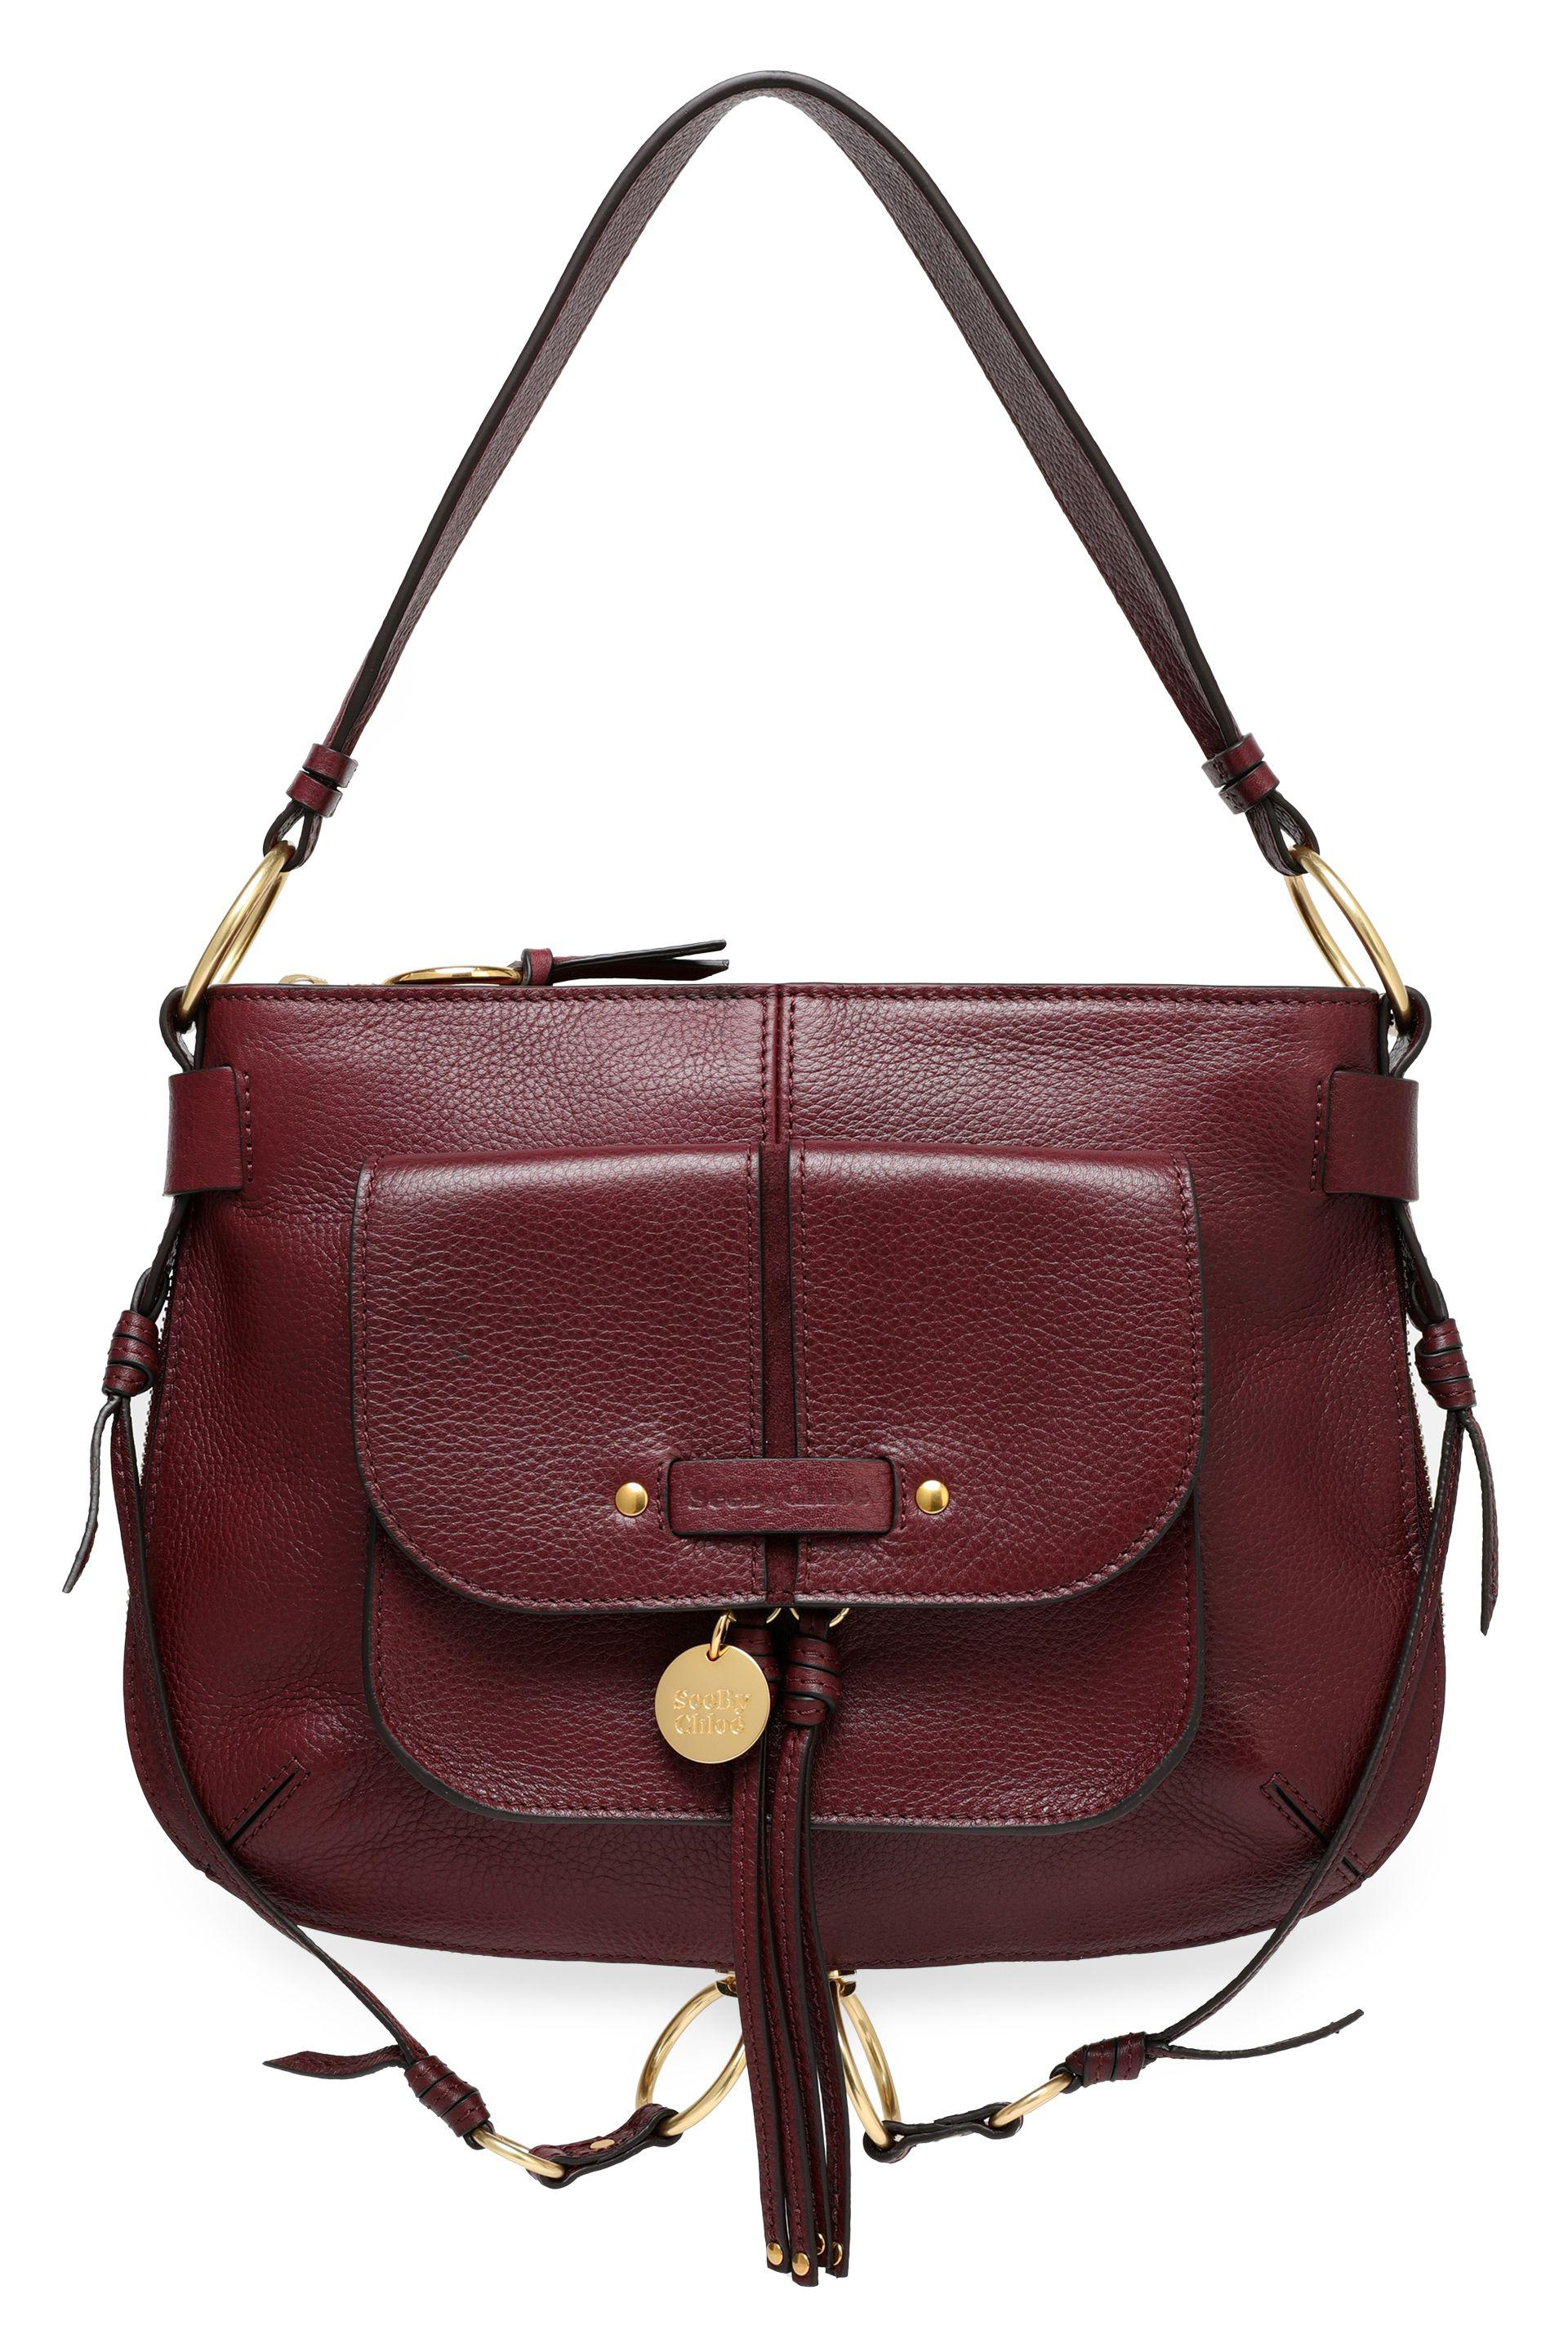 03d2e6aaa7 See By Chloé Textured-leather Shoulder Bag in Purple - Lyst